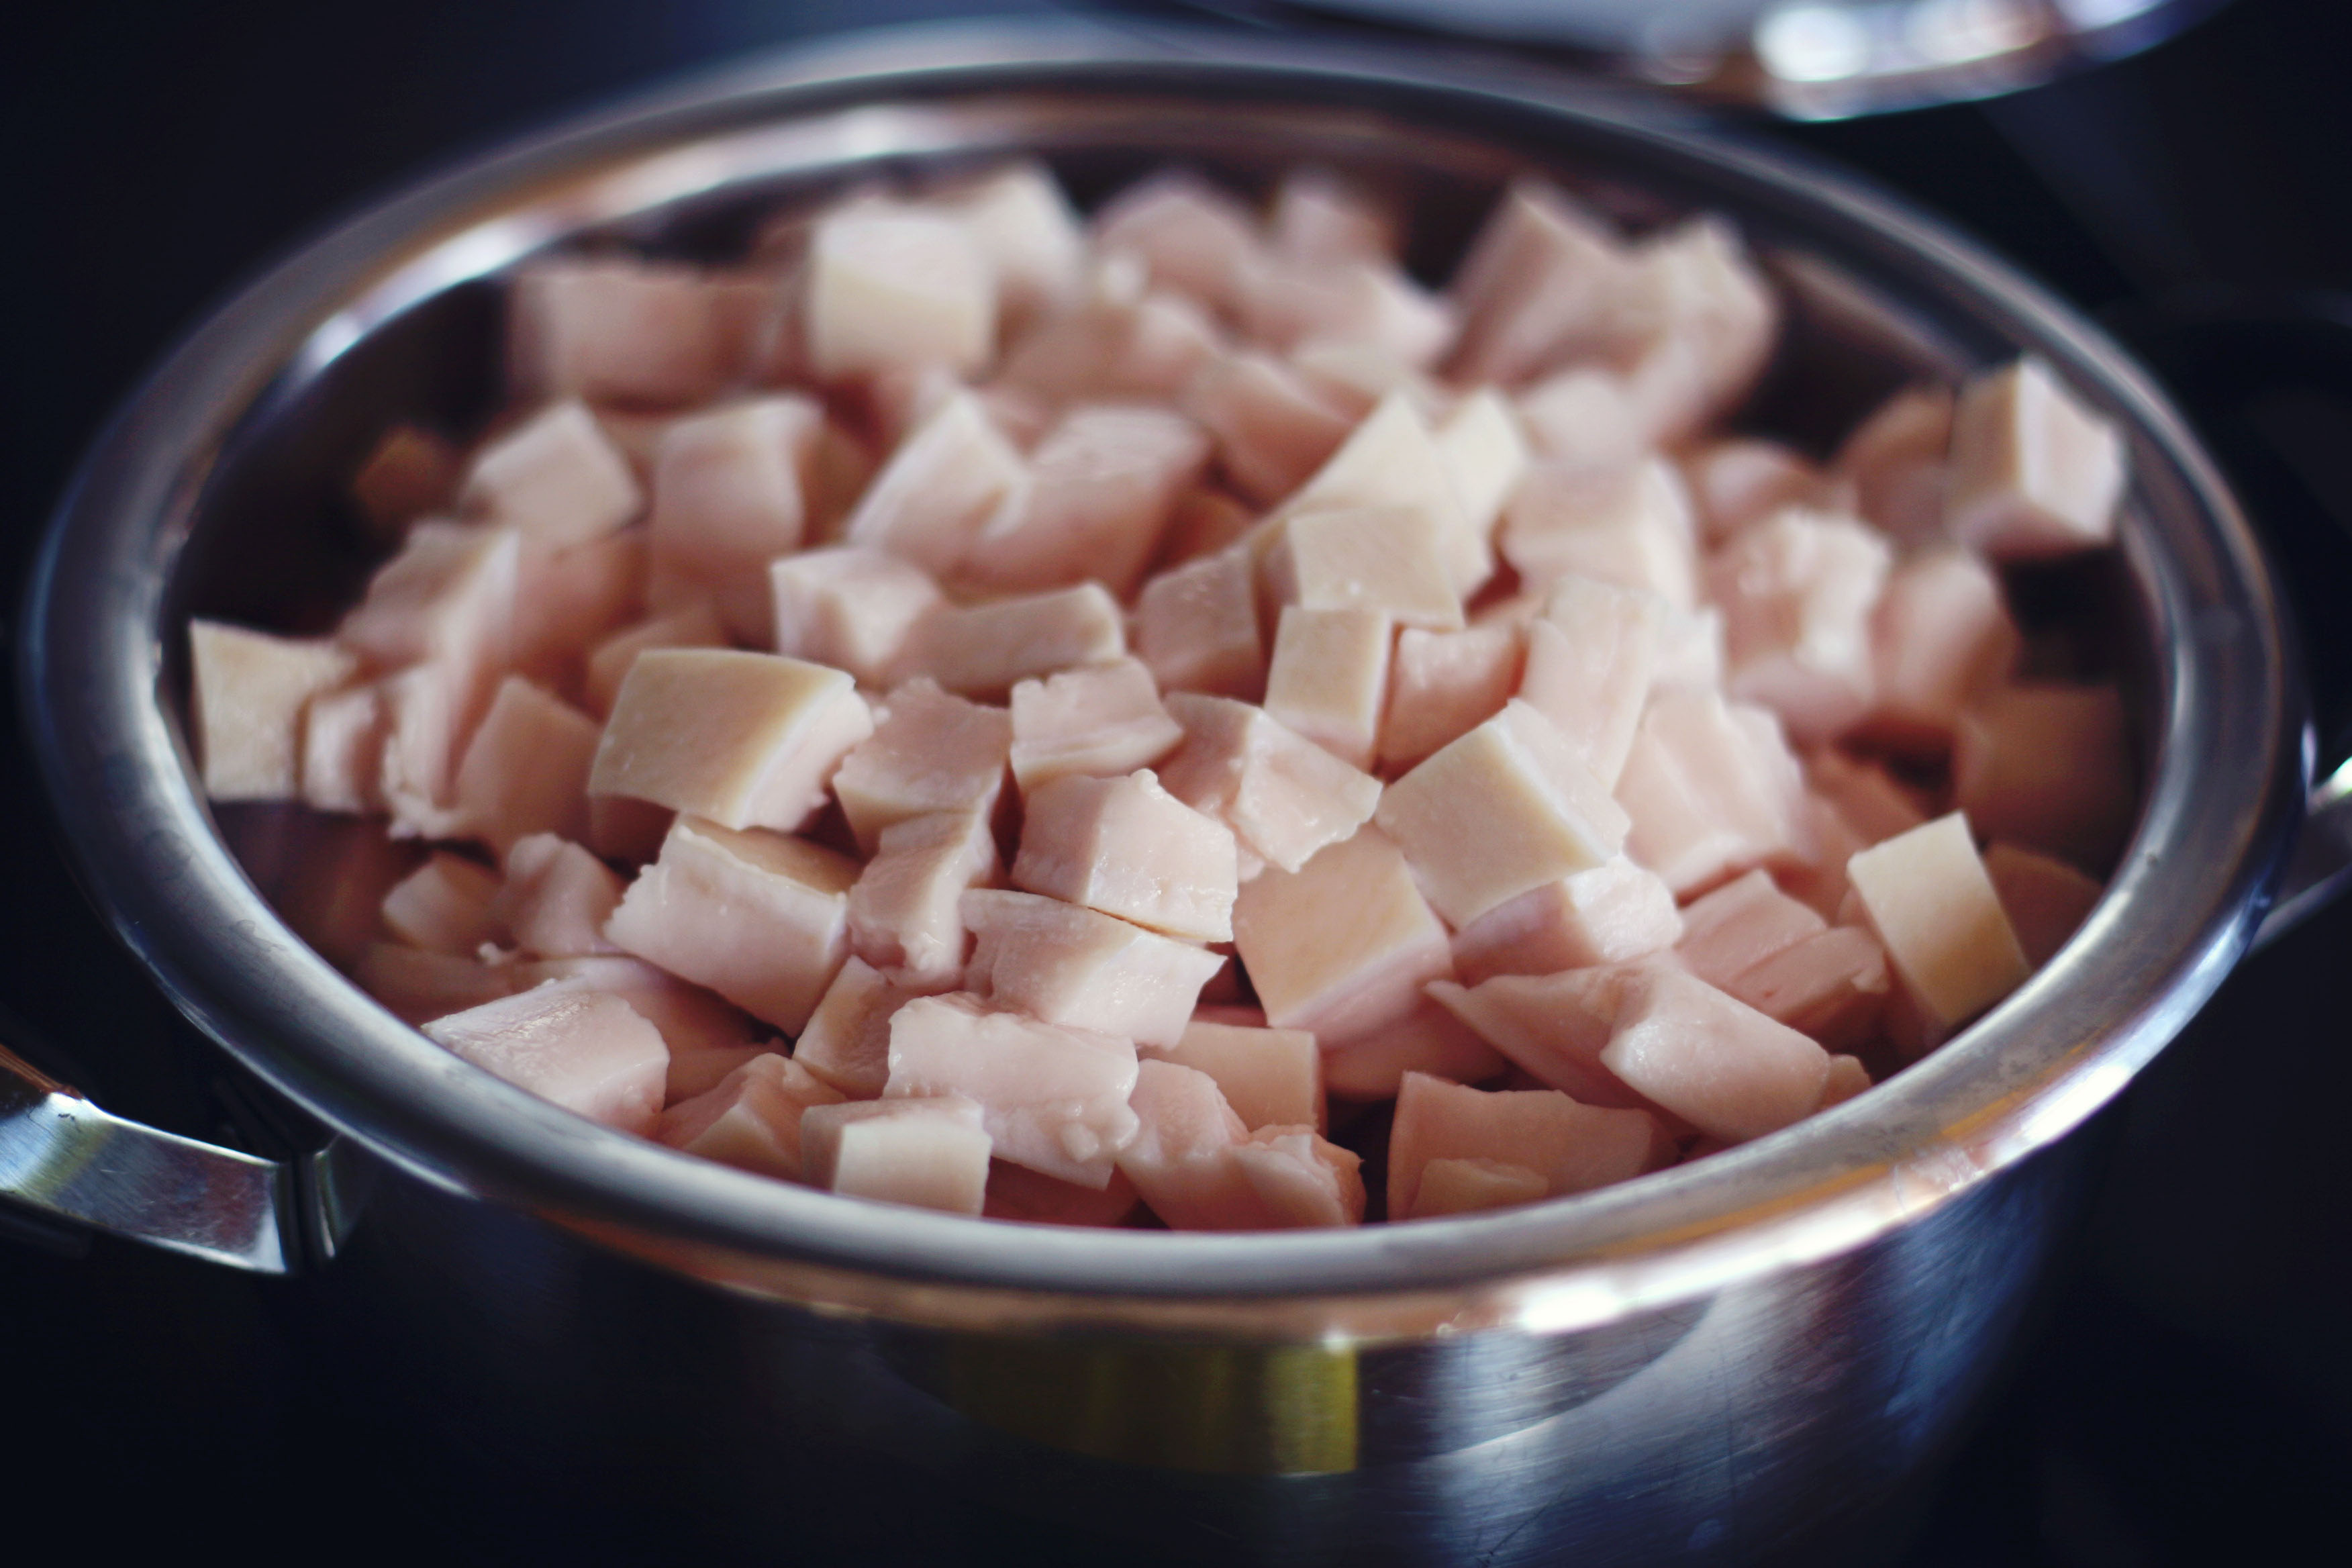 Picture of Step One: Obtain Your Pork Fat of Choice, and Cut Into Small Cubes